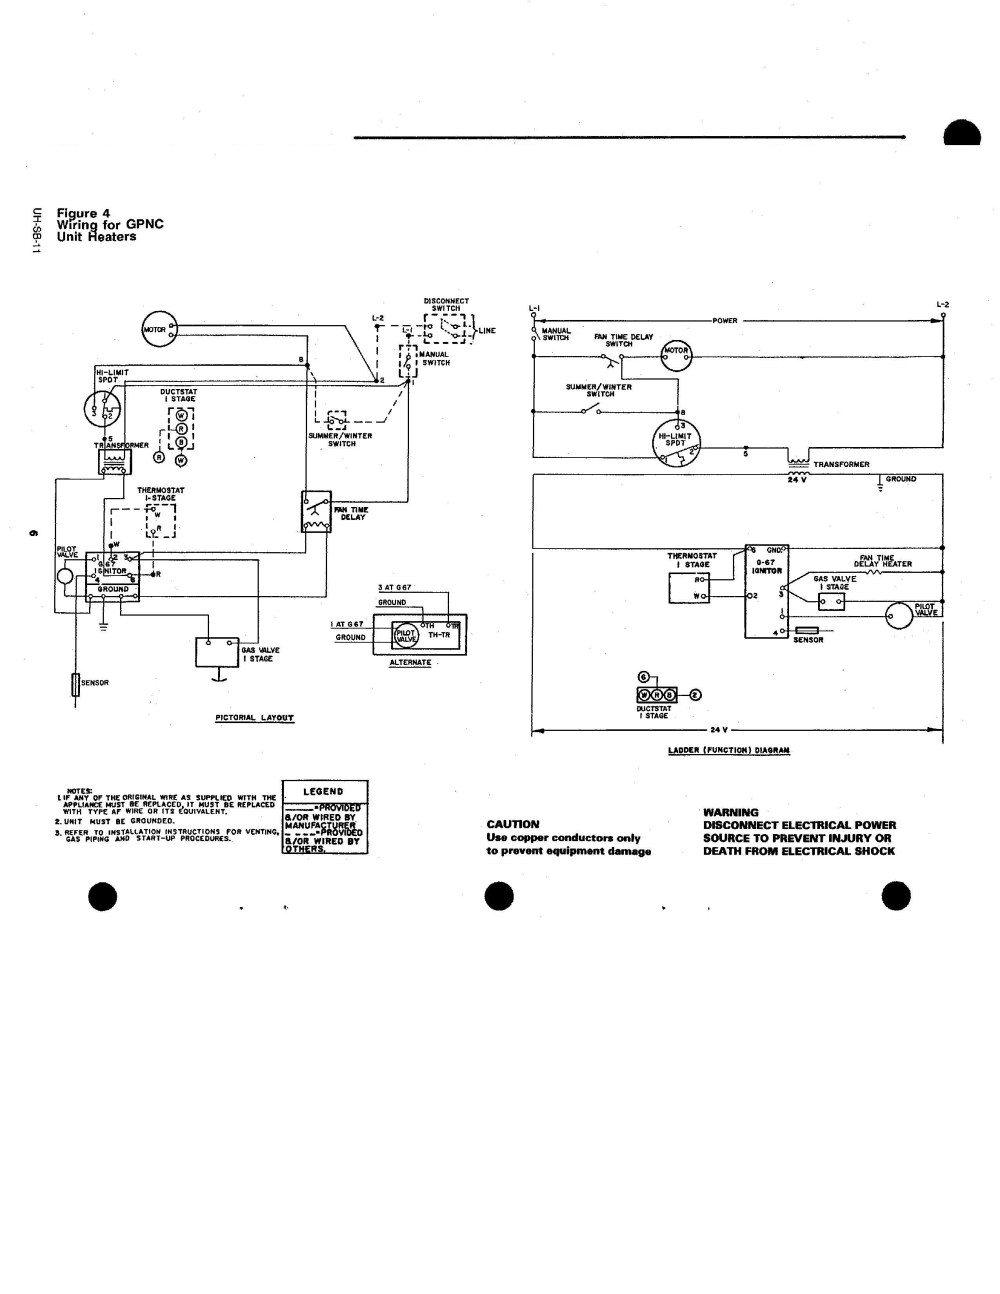 medium resolution of wiring diagram trane xe1000 2014 01 15 gpnc pg6 at trane wiring